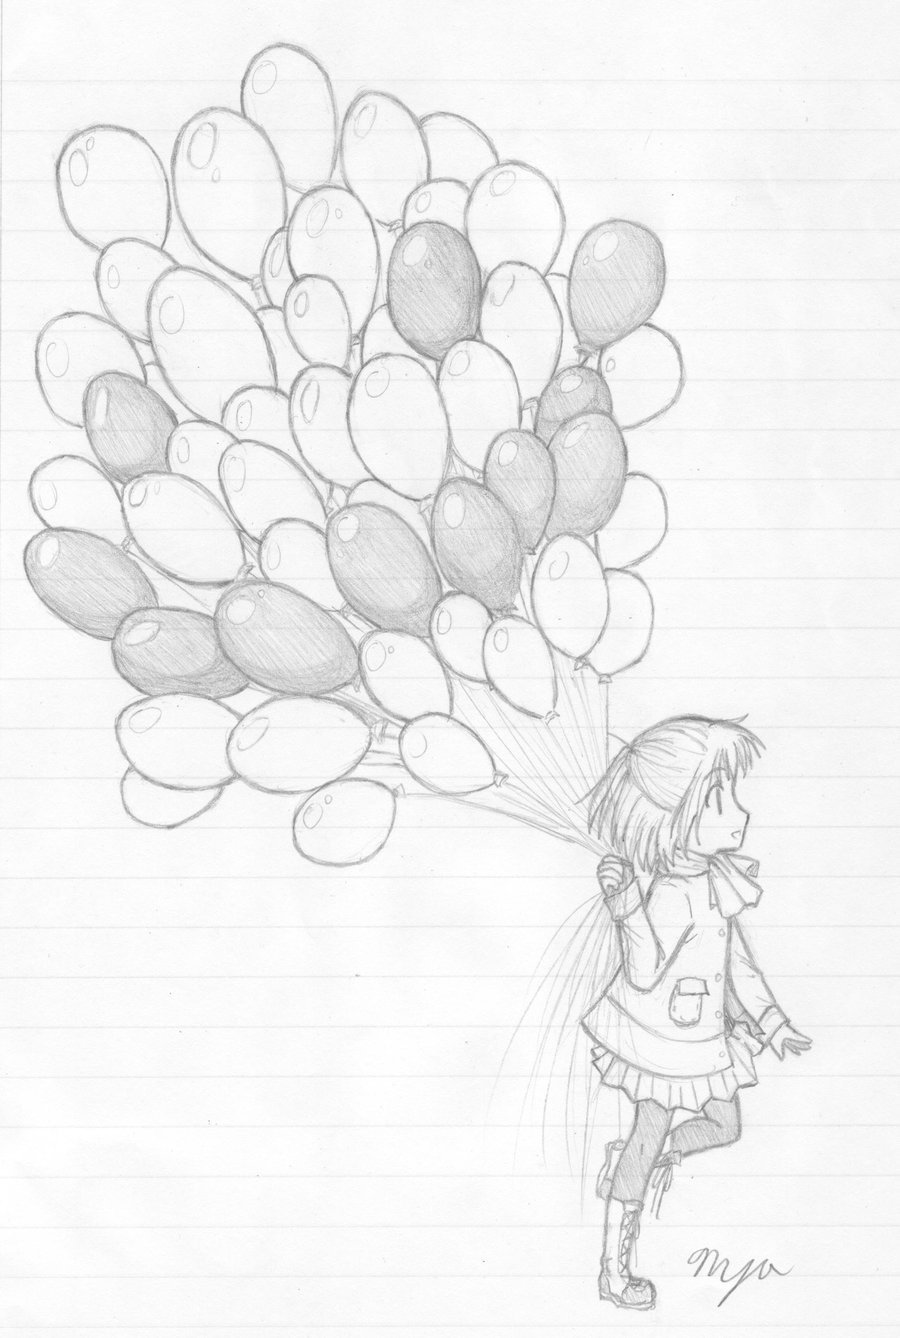 900x1338 Illustration Of A Balloon Sketch On A White Background Stock